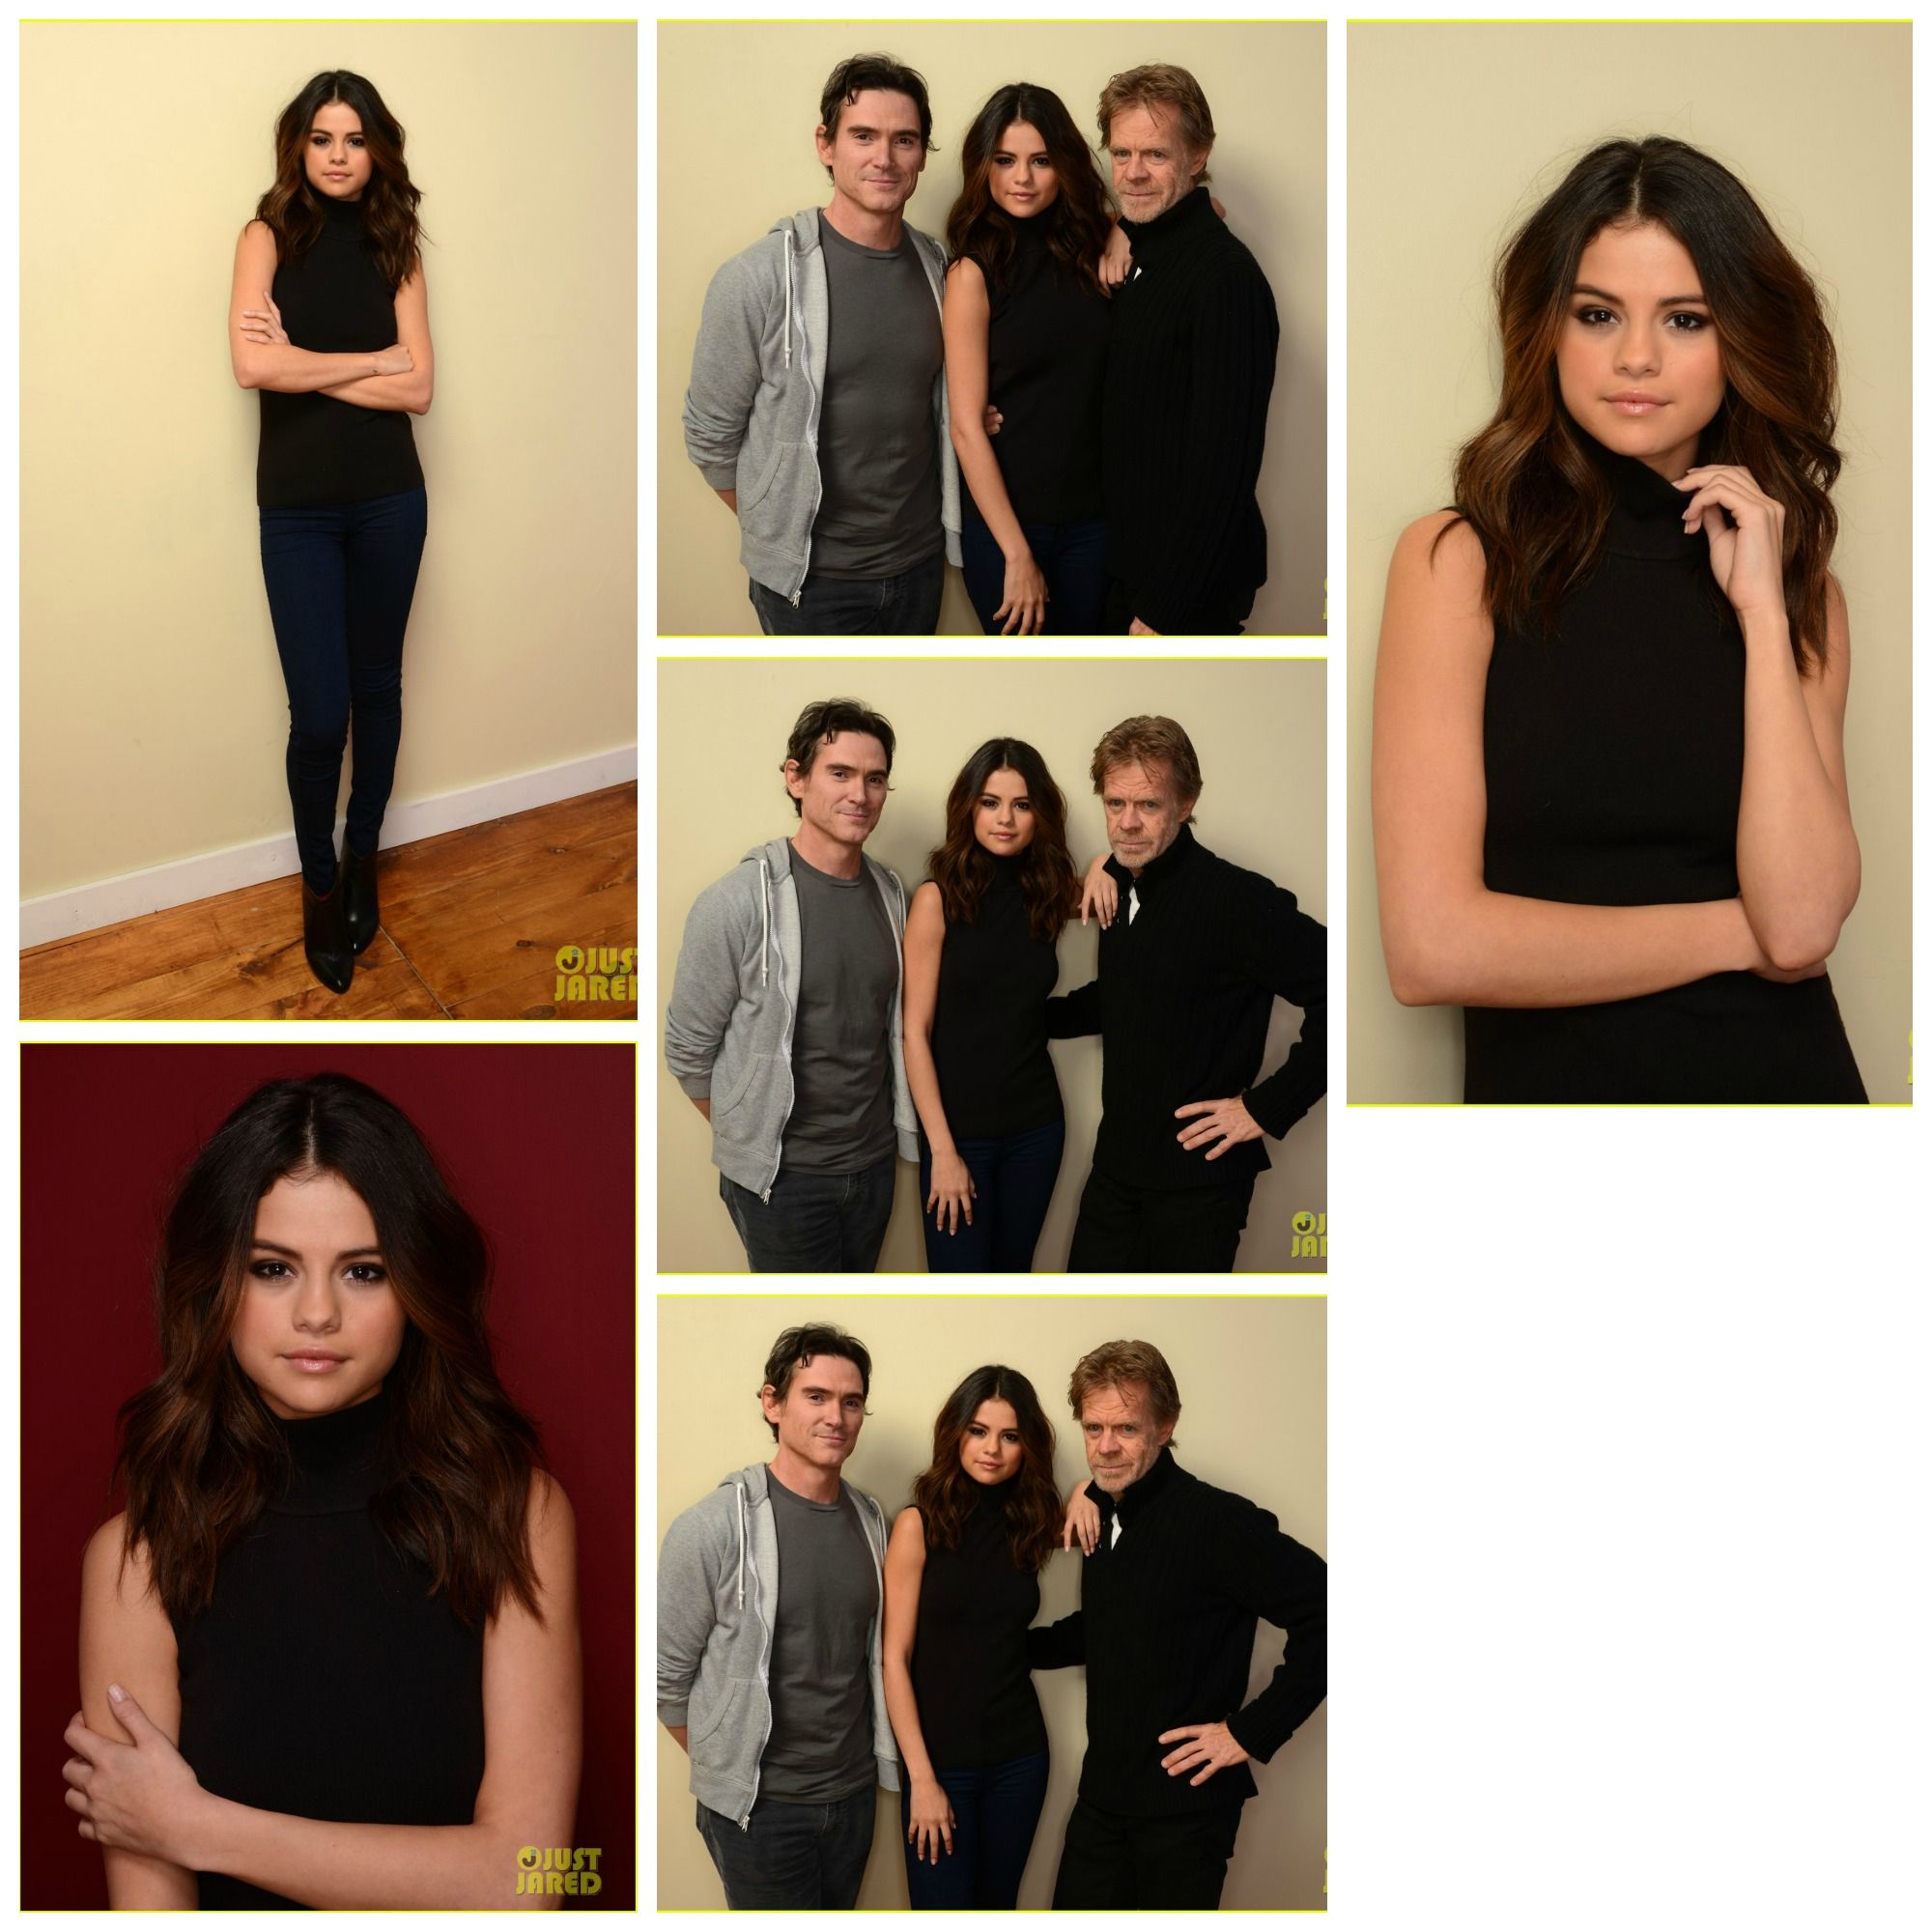 Selena Gomez with the cast of Rudderless (2014). Selena